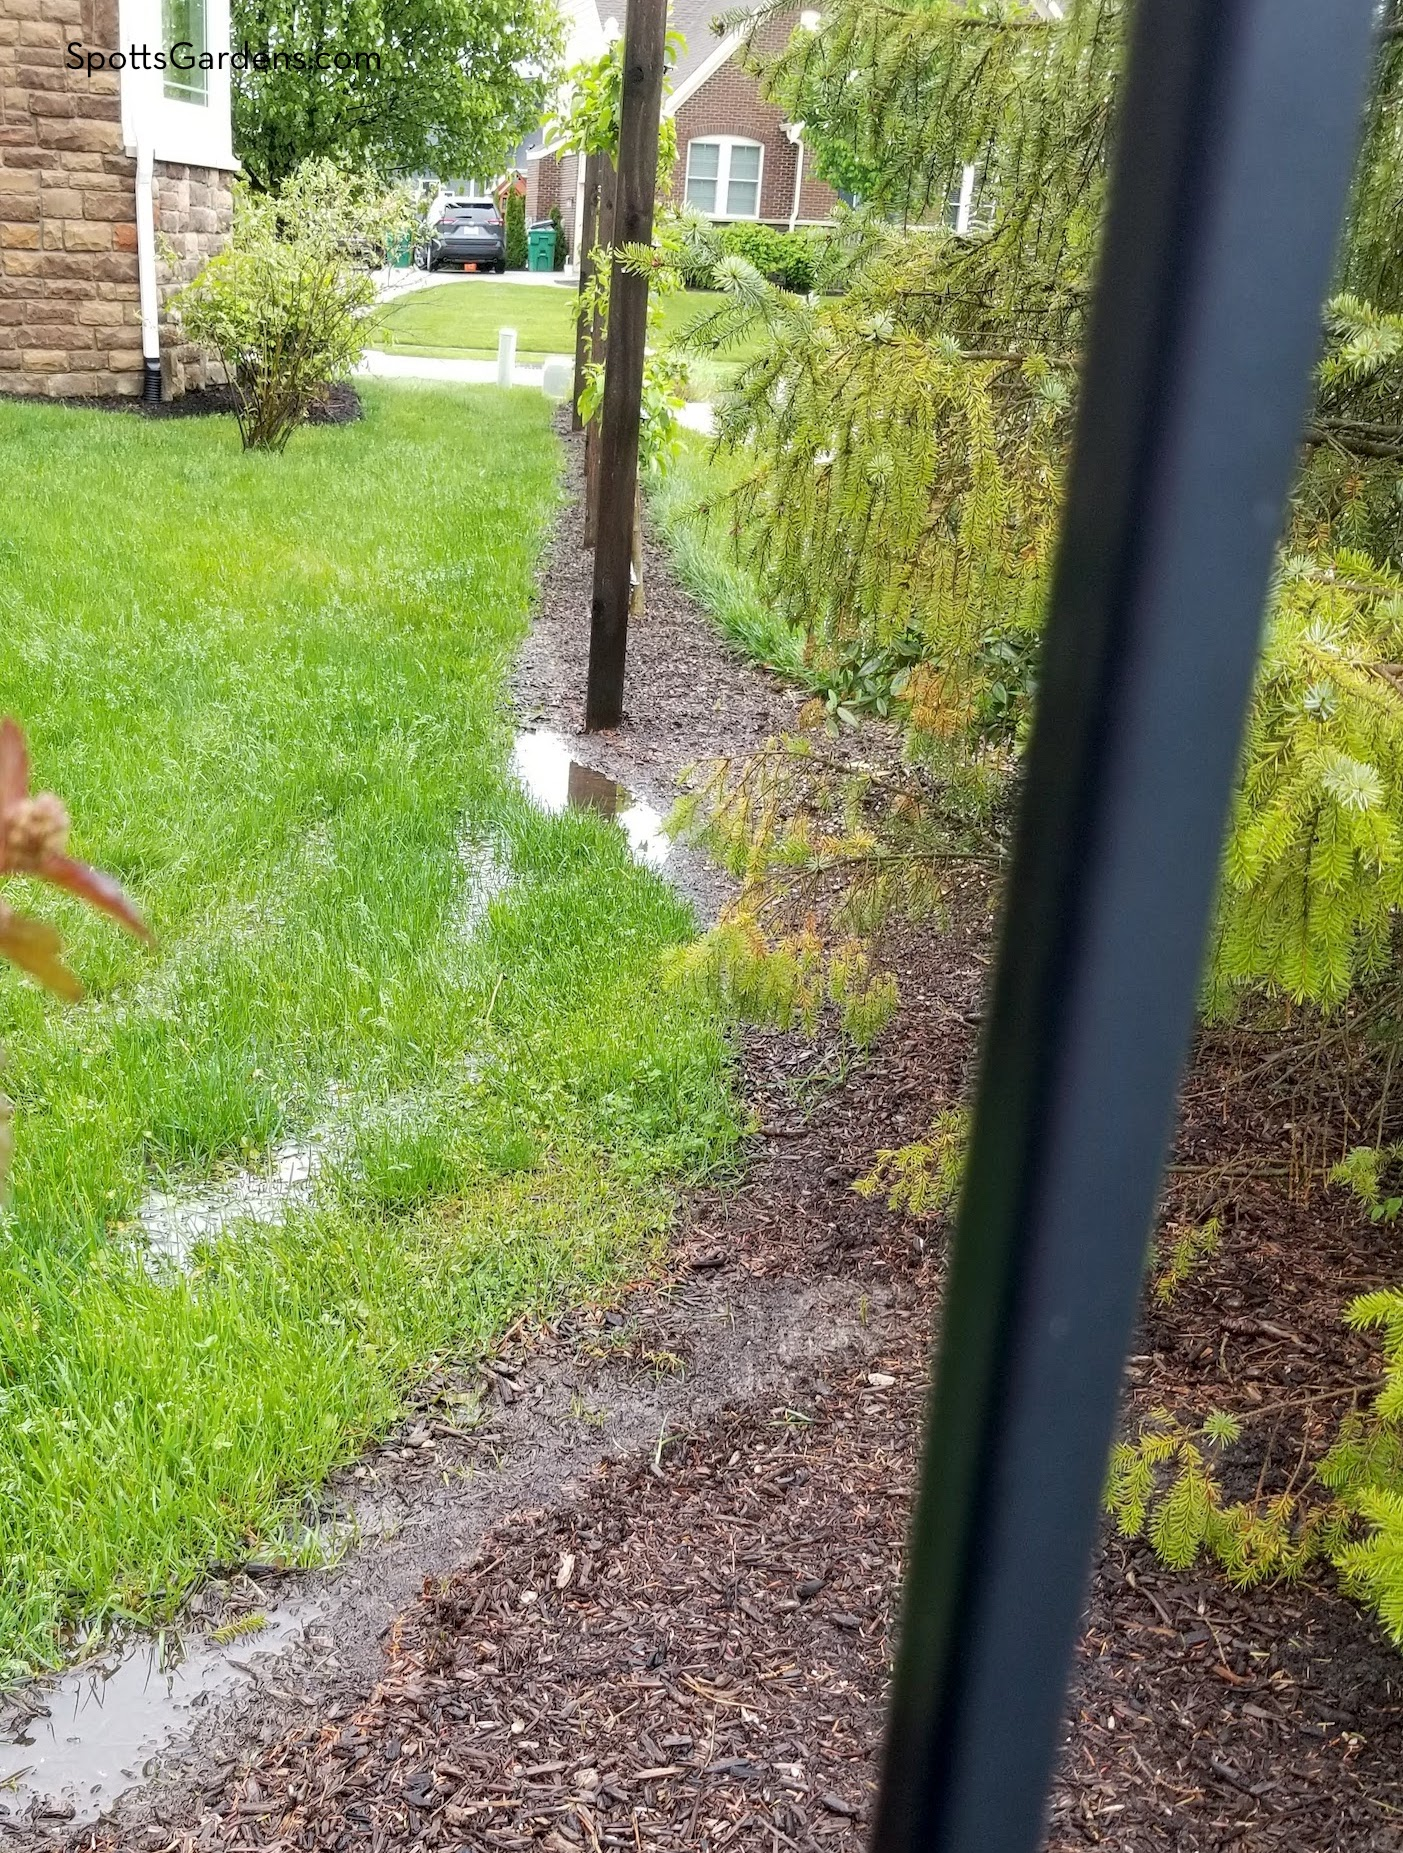 Rainwater pooling on lawn